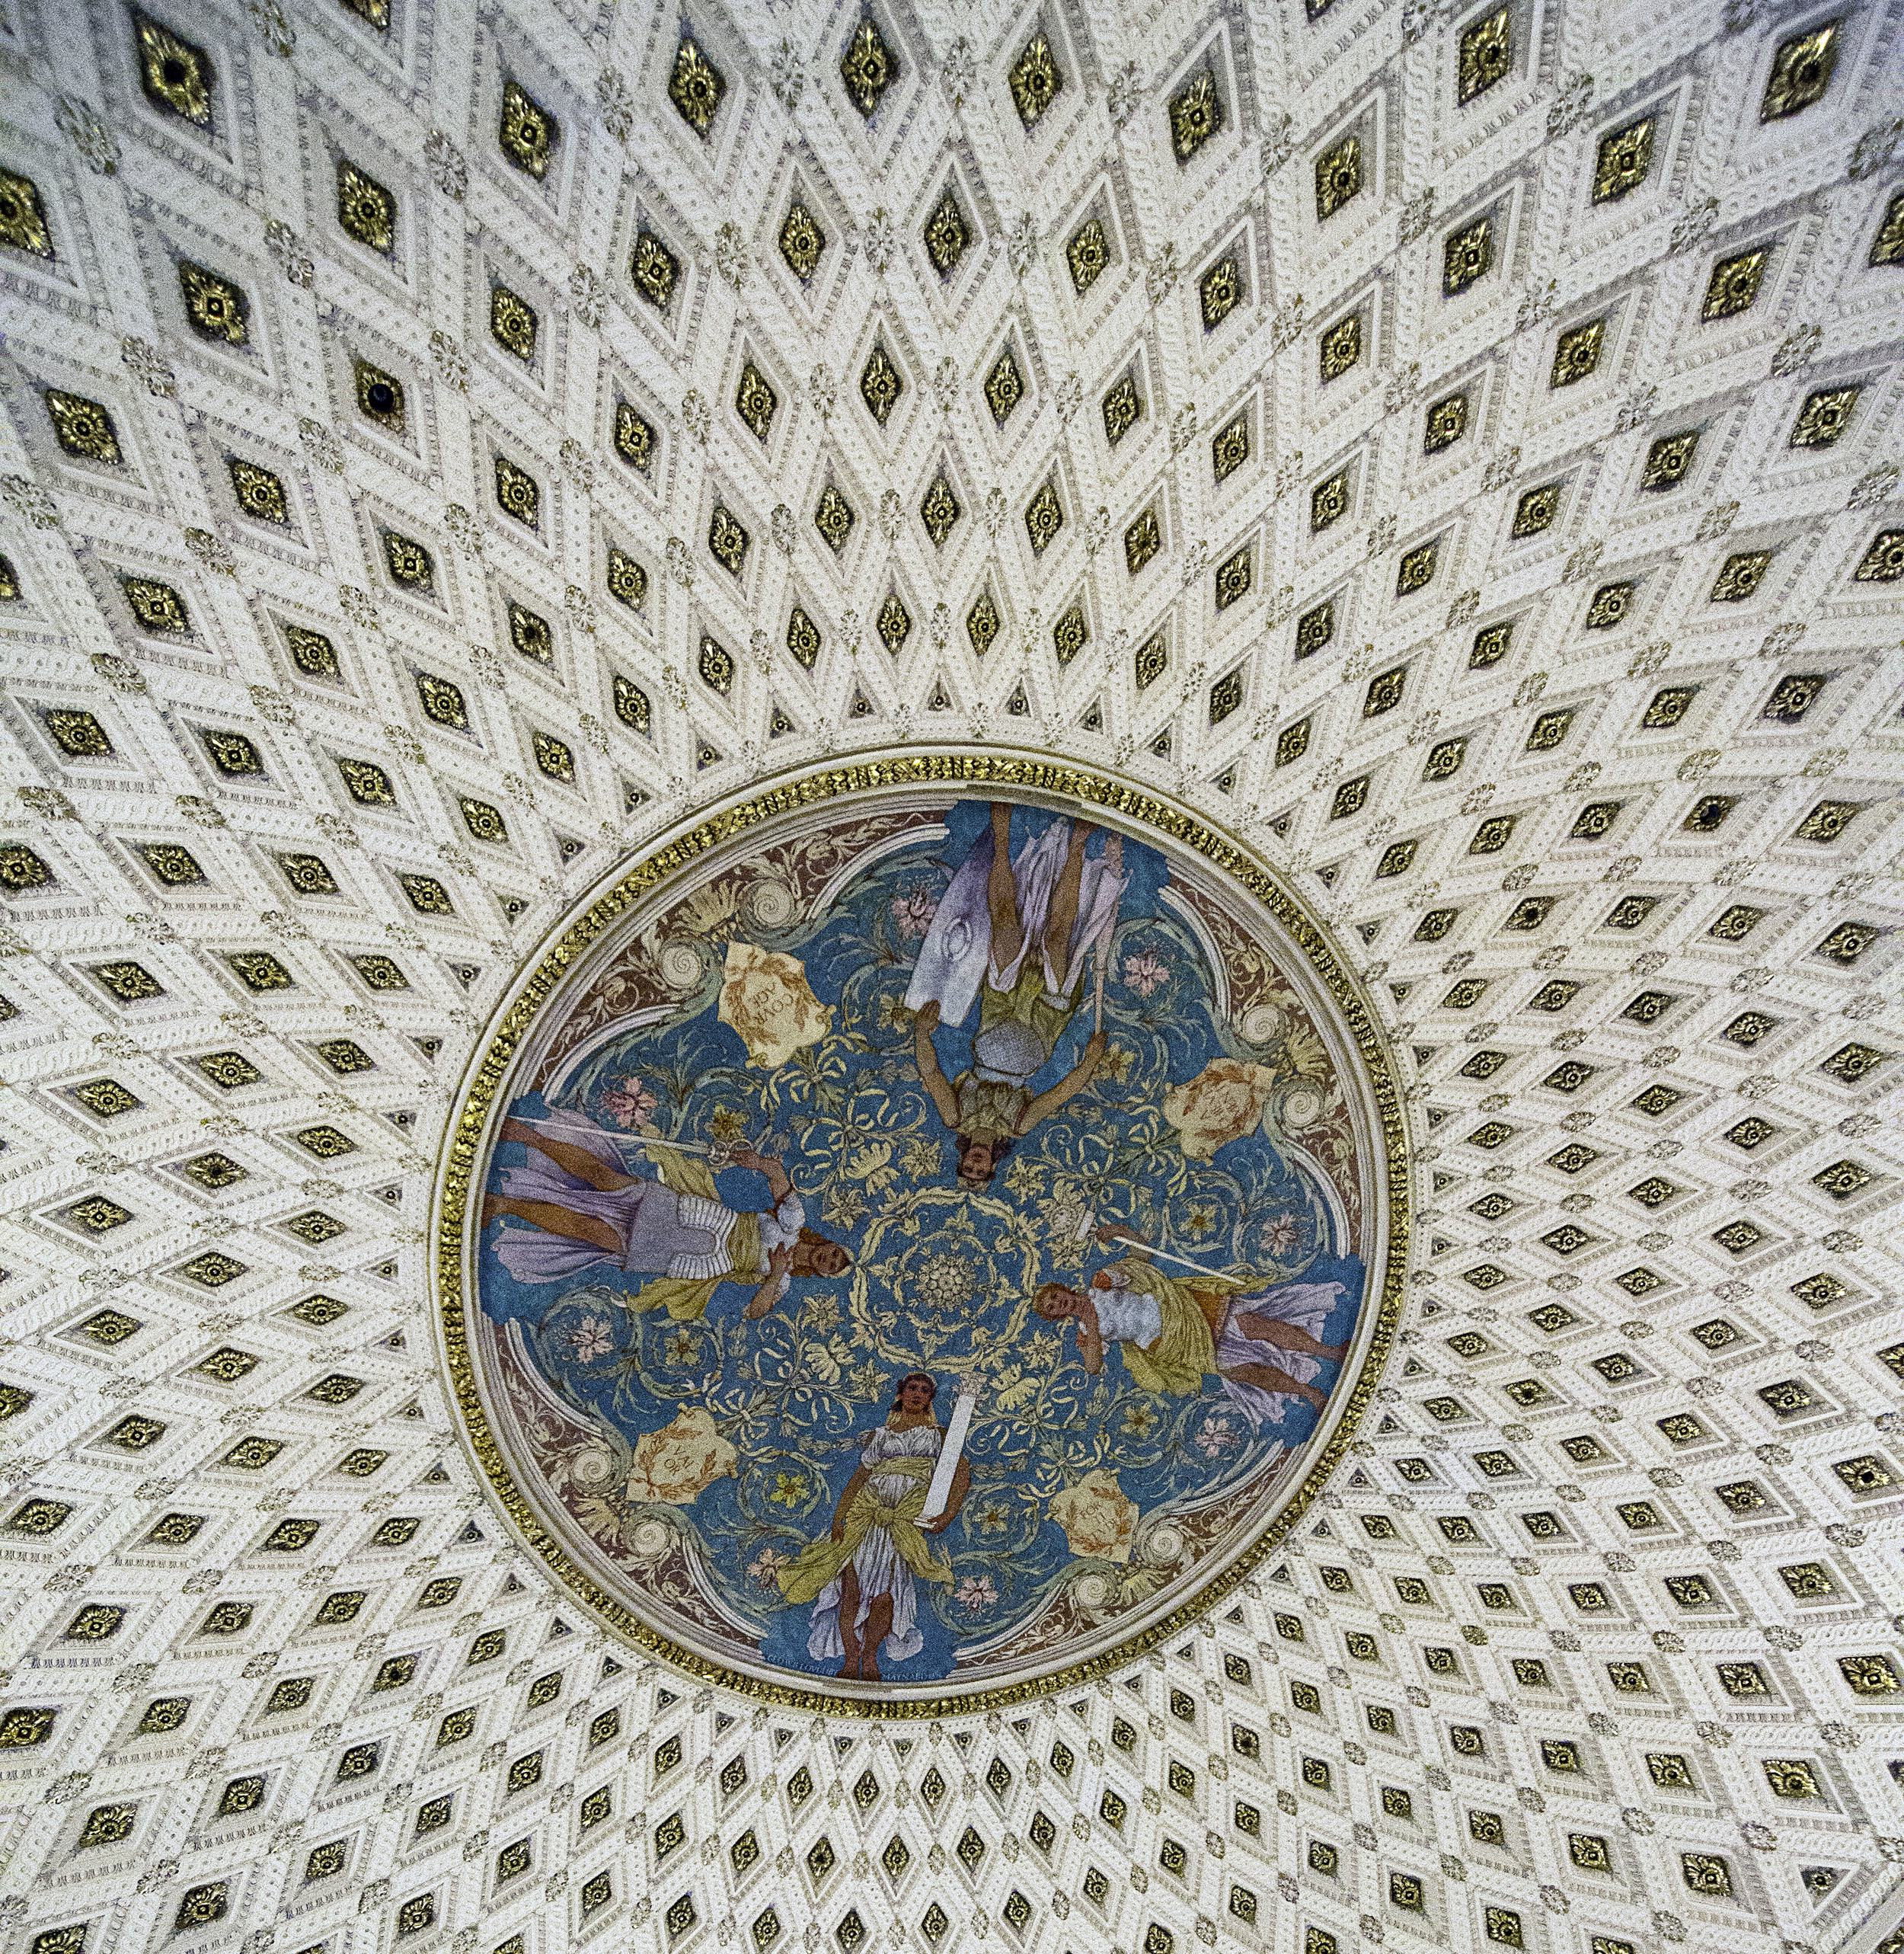 The ceiling of the main hall, which is awesome.